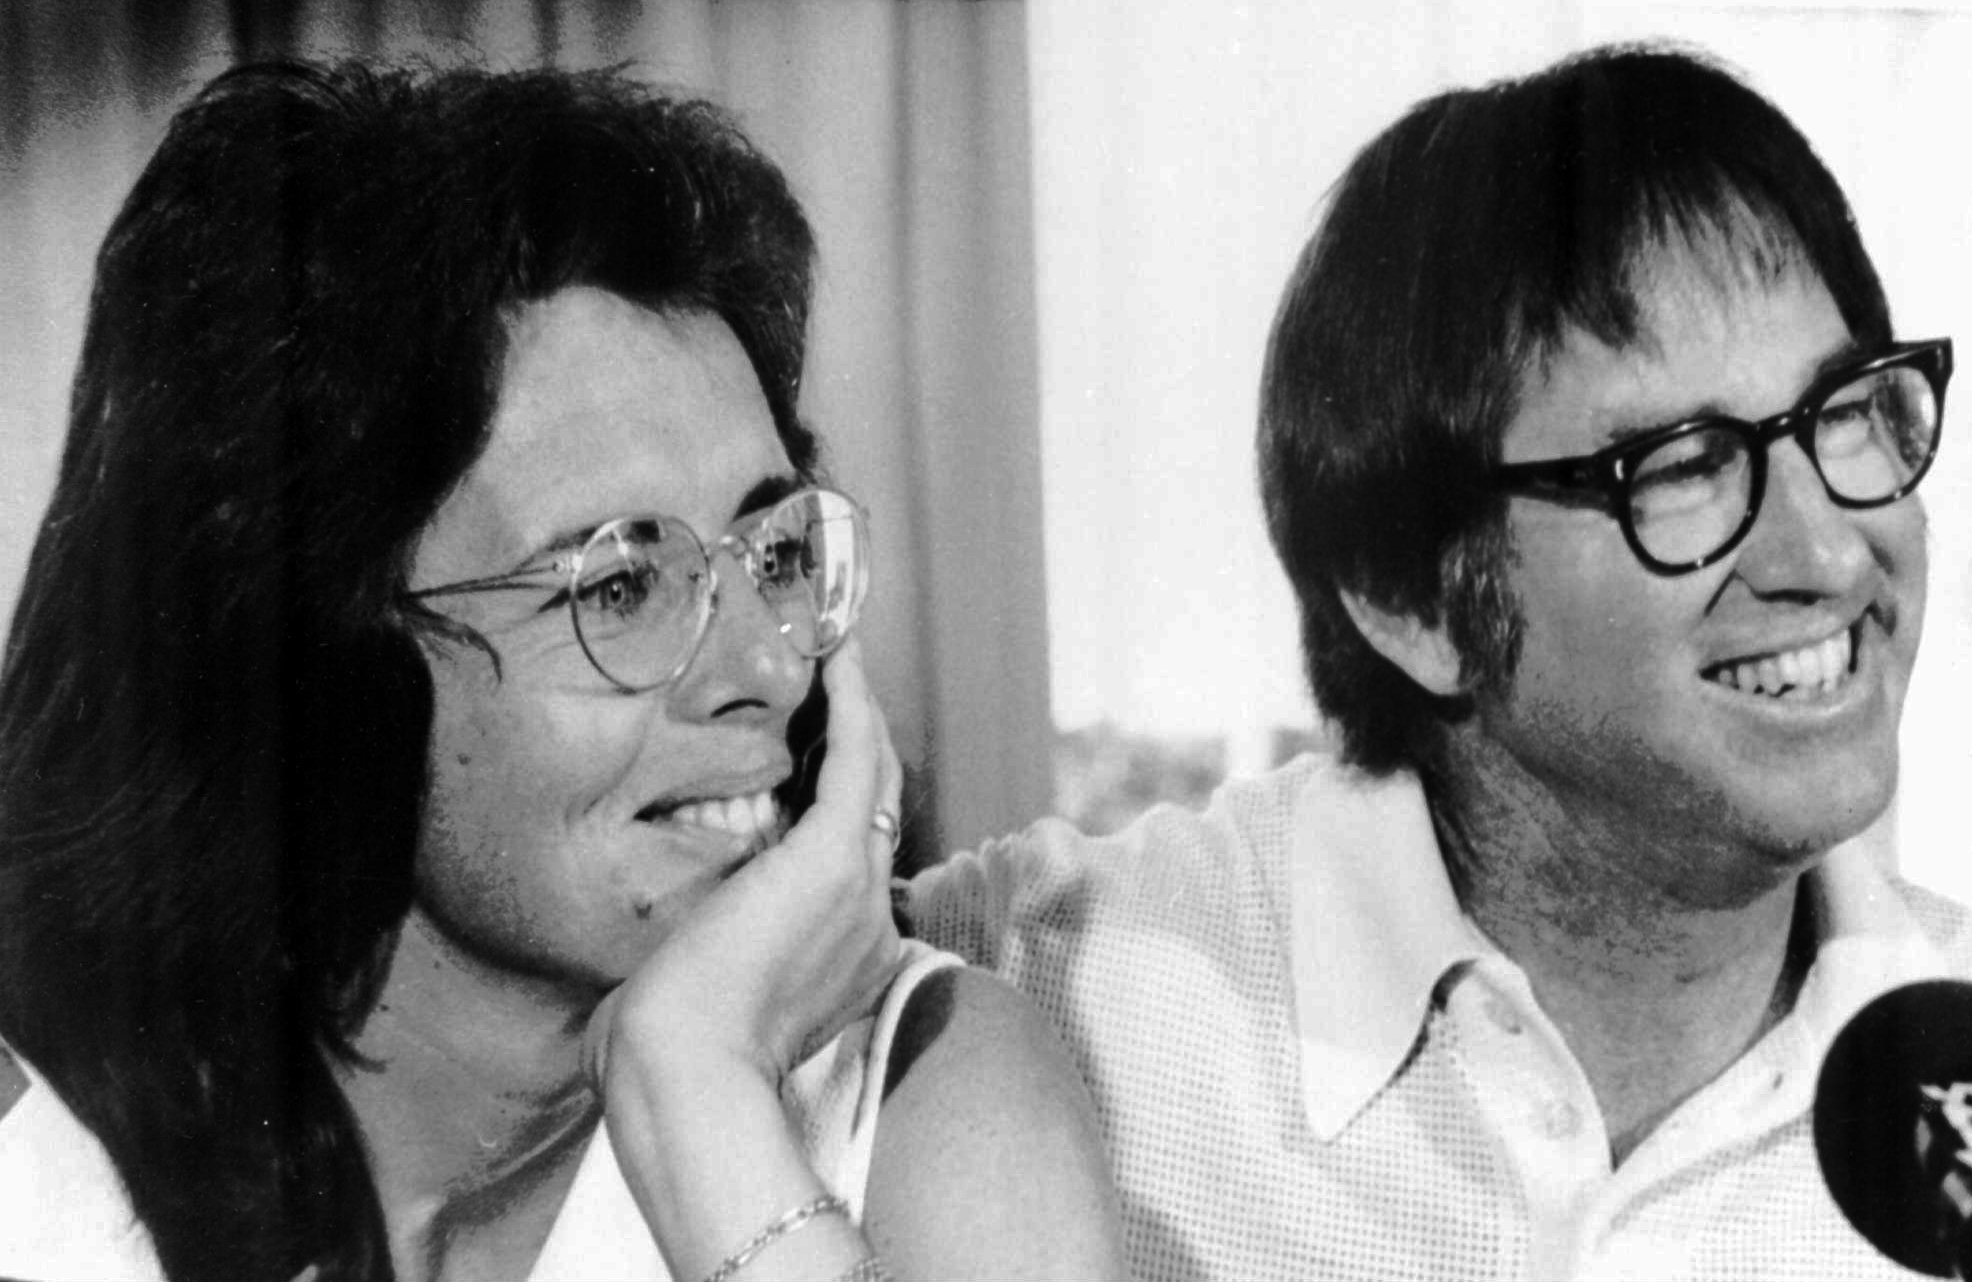 Billie Jean King Recalls That Match Riggs Death And Their Mutual Accomplishment Original Cin